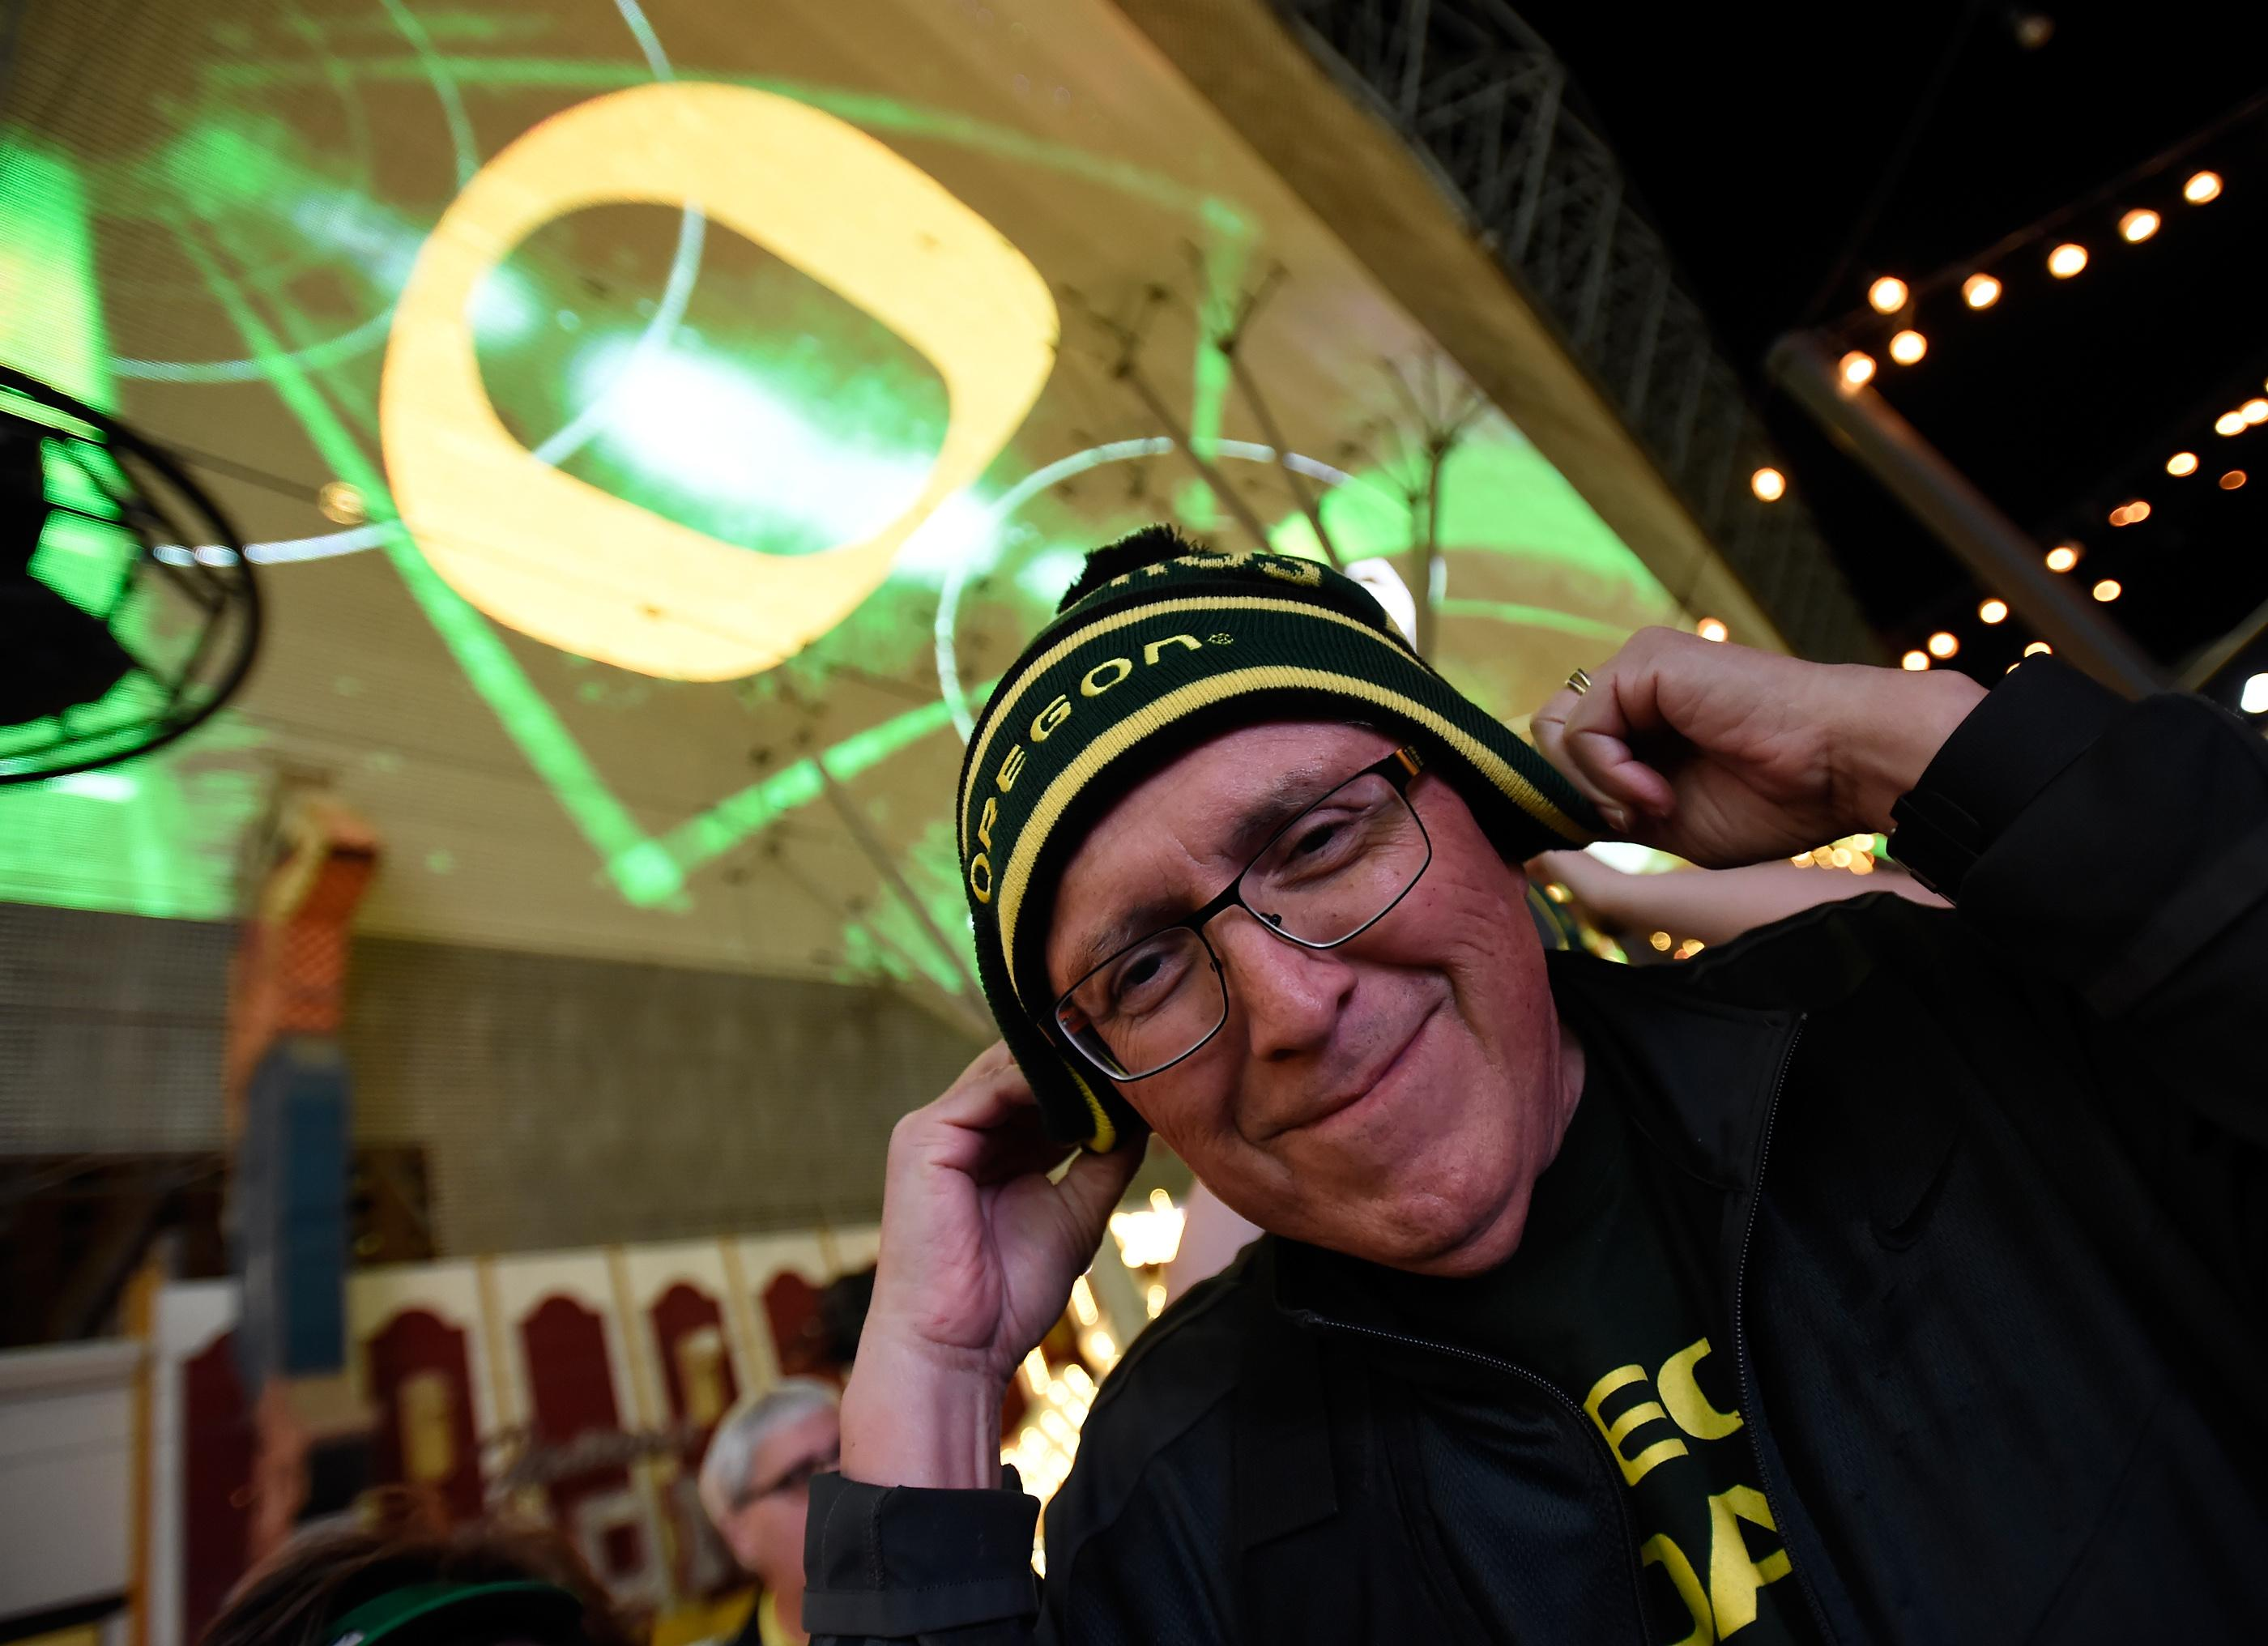 An Oregon fan bundles up during a pep rally at the Fremont Street Experience Friday, Dec. 15, 2017, in Las Vegas. The Boise State Bronco will take on the Oregon Ducks in the 26th edition of the Las Vegas Bowl at Sam Boyd Stadium on Saturday. CREDIT: David Becker/Las Vegas News Bureau